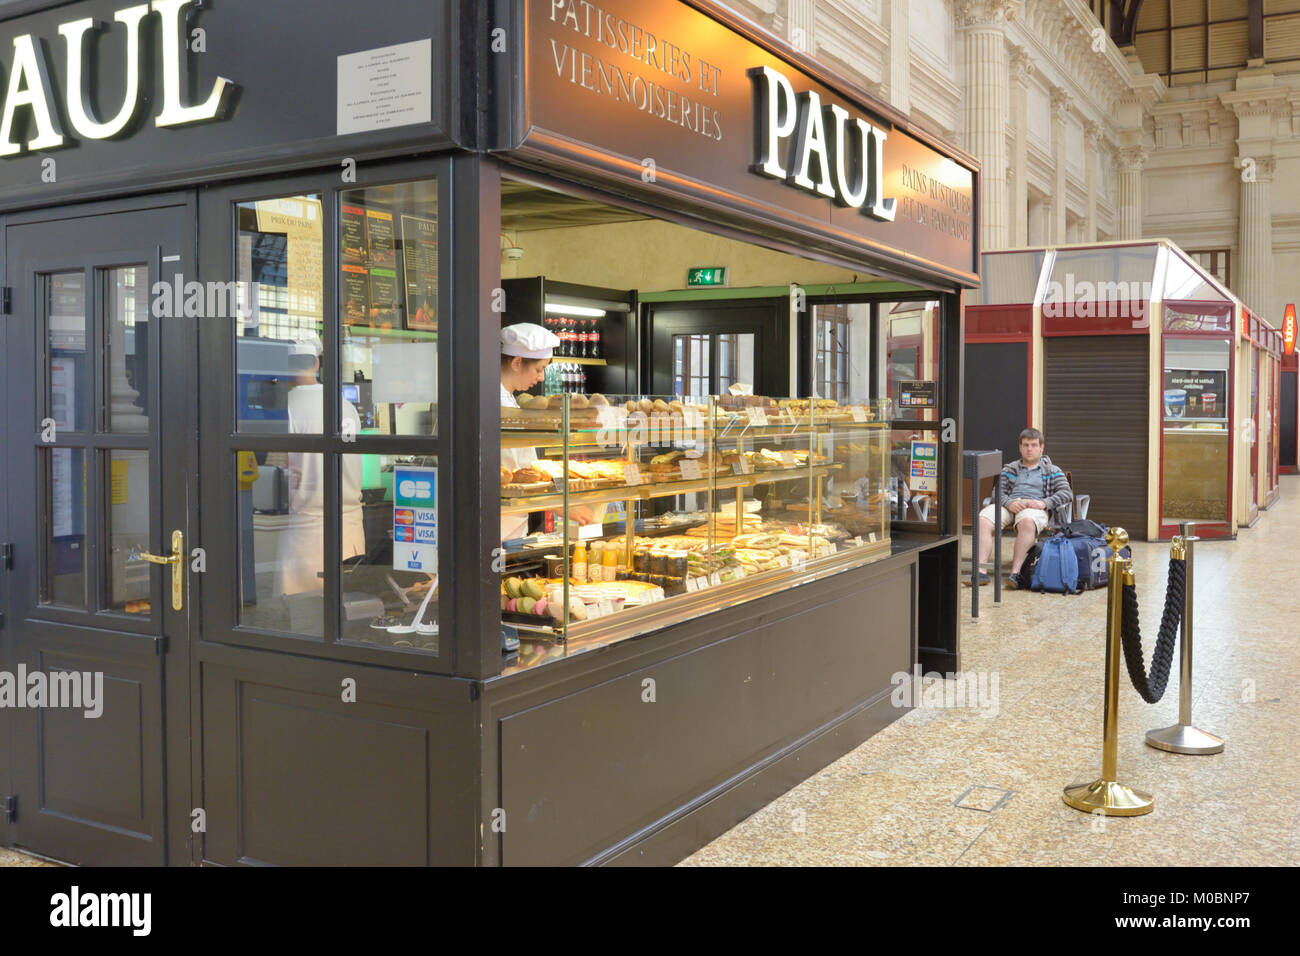 Bordeaux, France - June 27, 2013: Patisserie PAUL offers foods on the train station. Founded in 1889, now La Maison - Stock Image